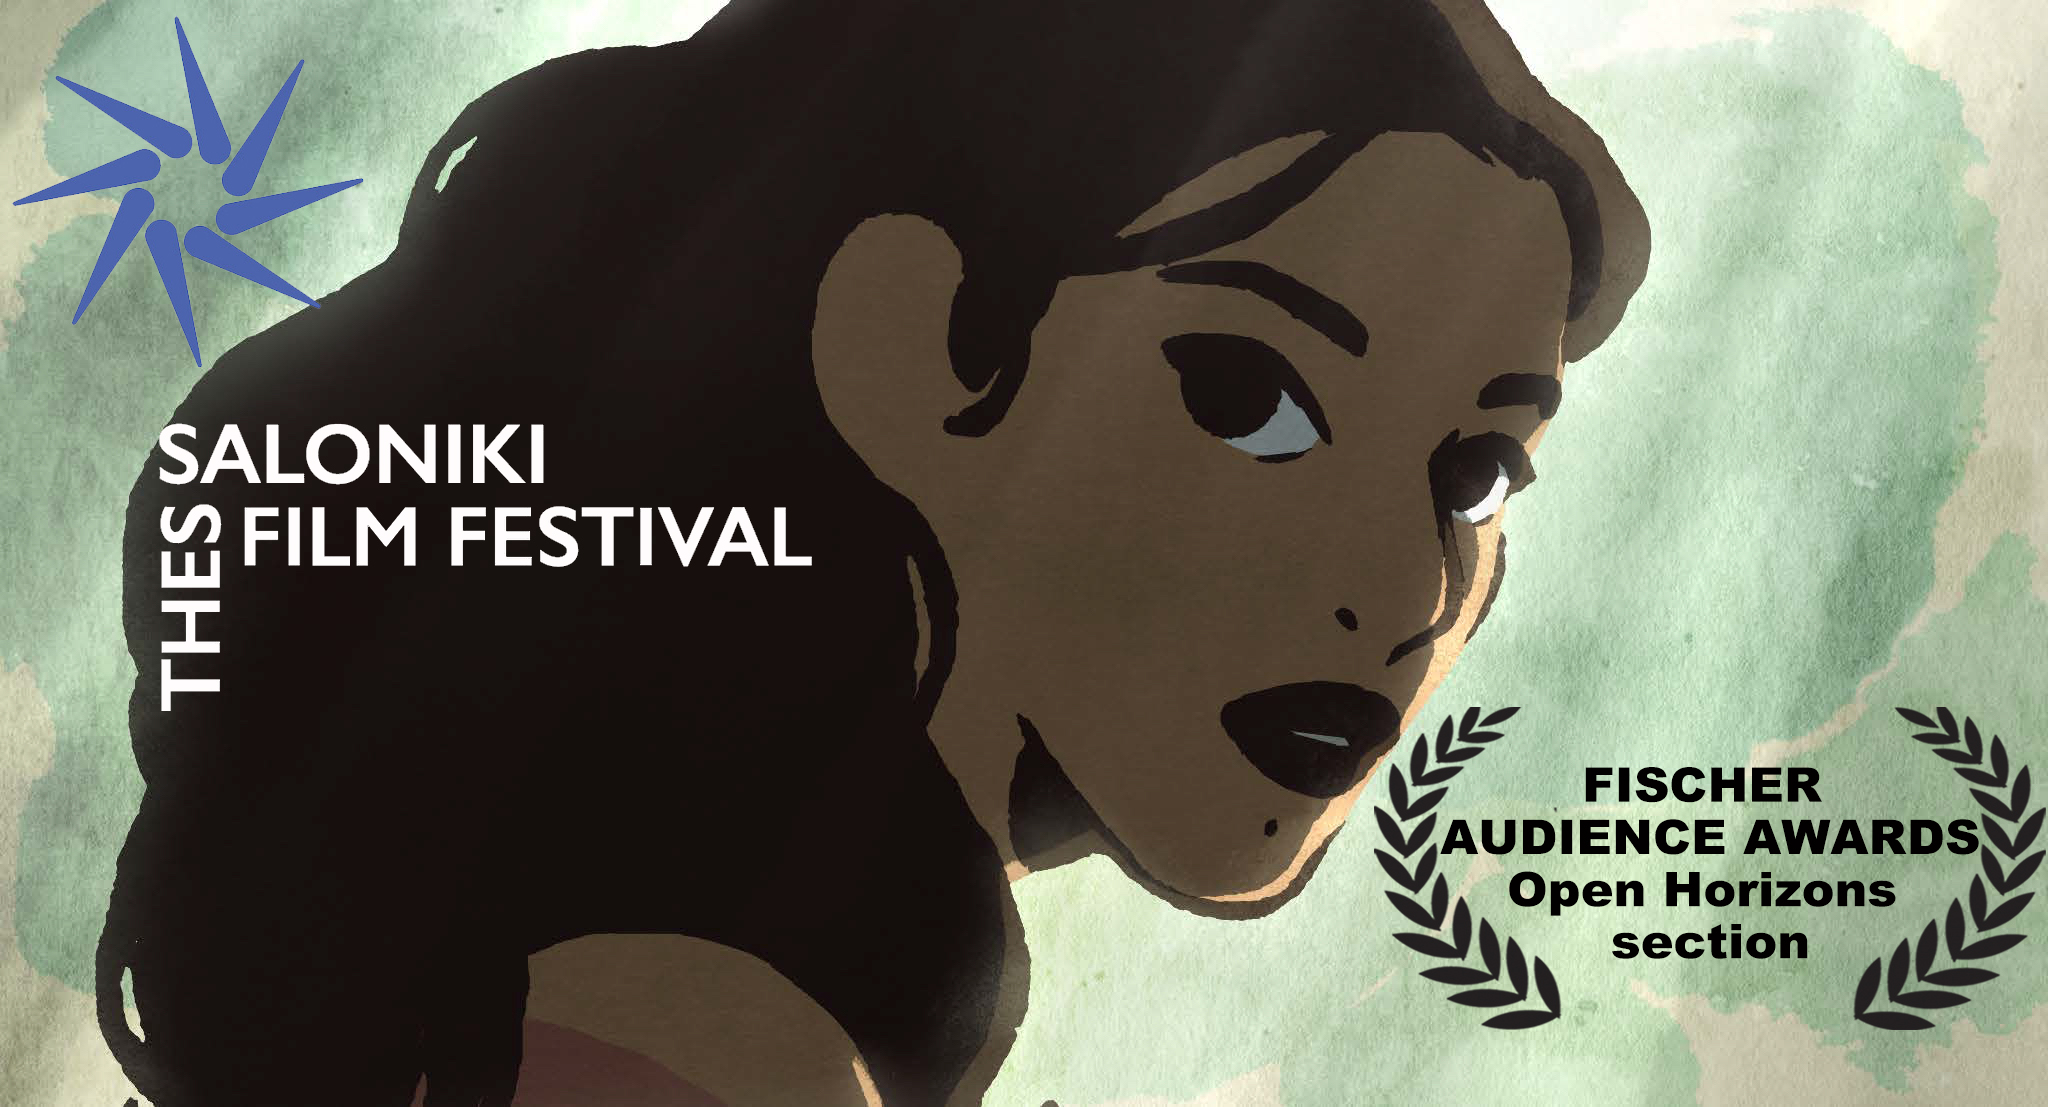 THE SWALLOWS OF KABUL wins the FISCHER AUDIENCE AWARDS @ Thessaloniki International Film Festival